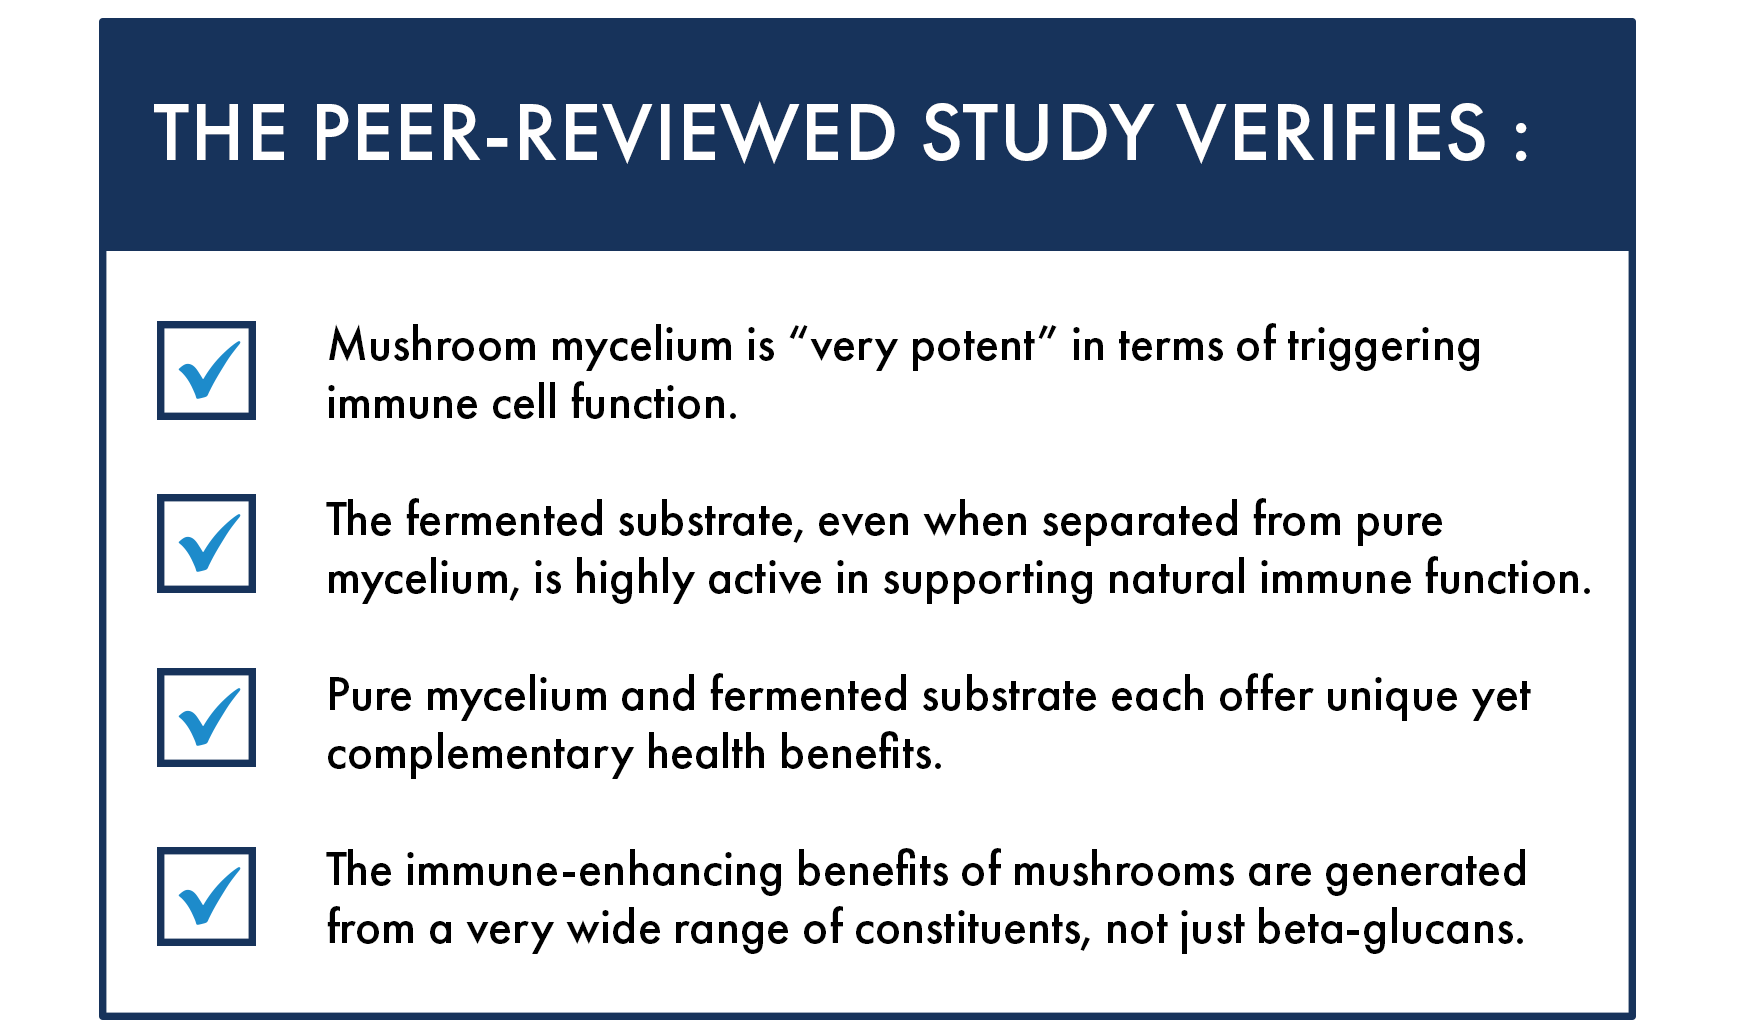 Immune Benefits of Mycelium and Fermented Substrate